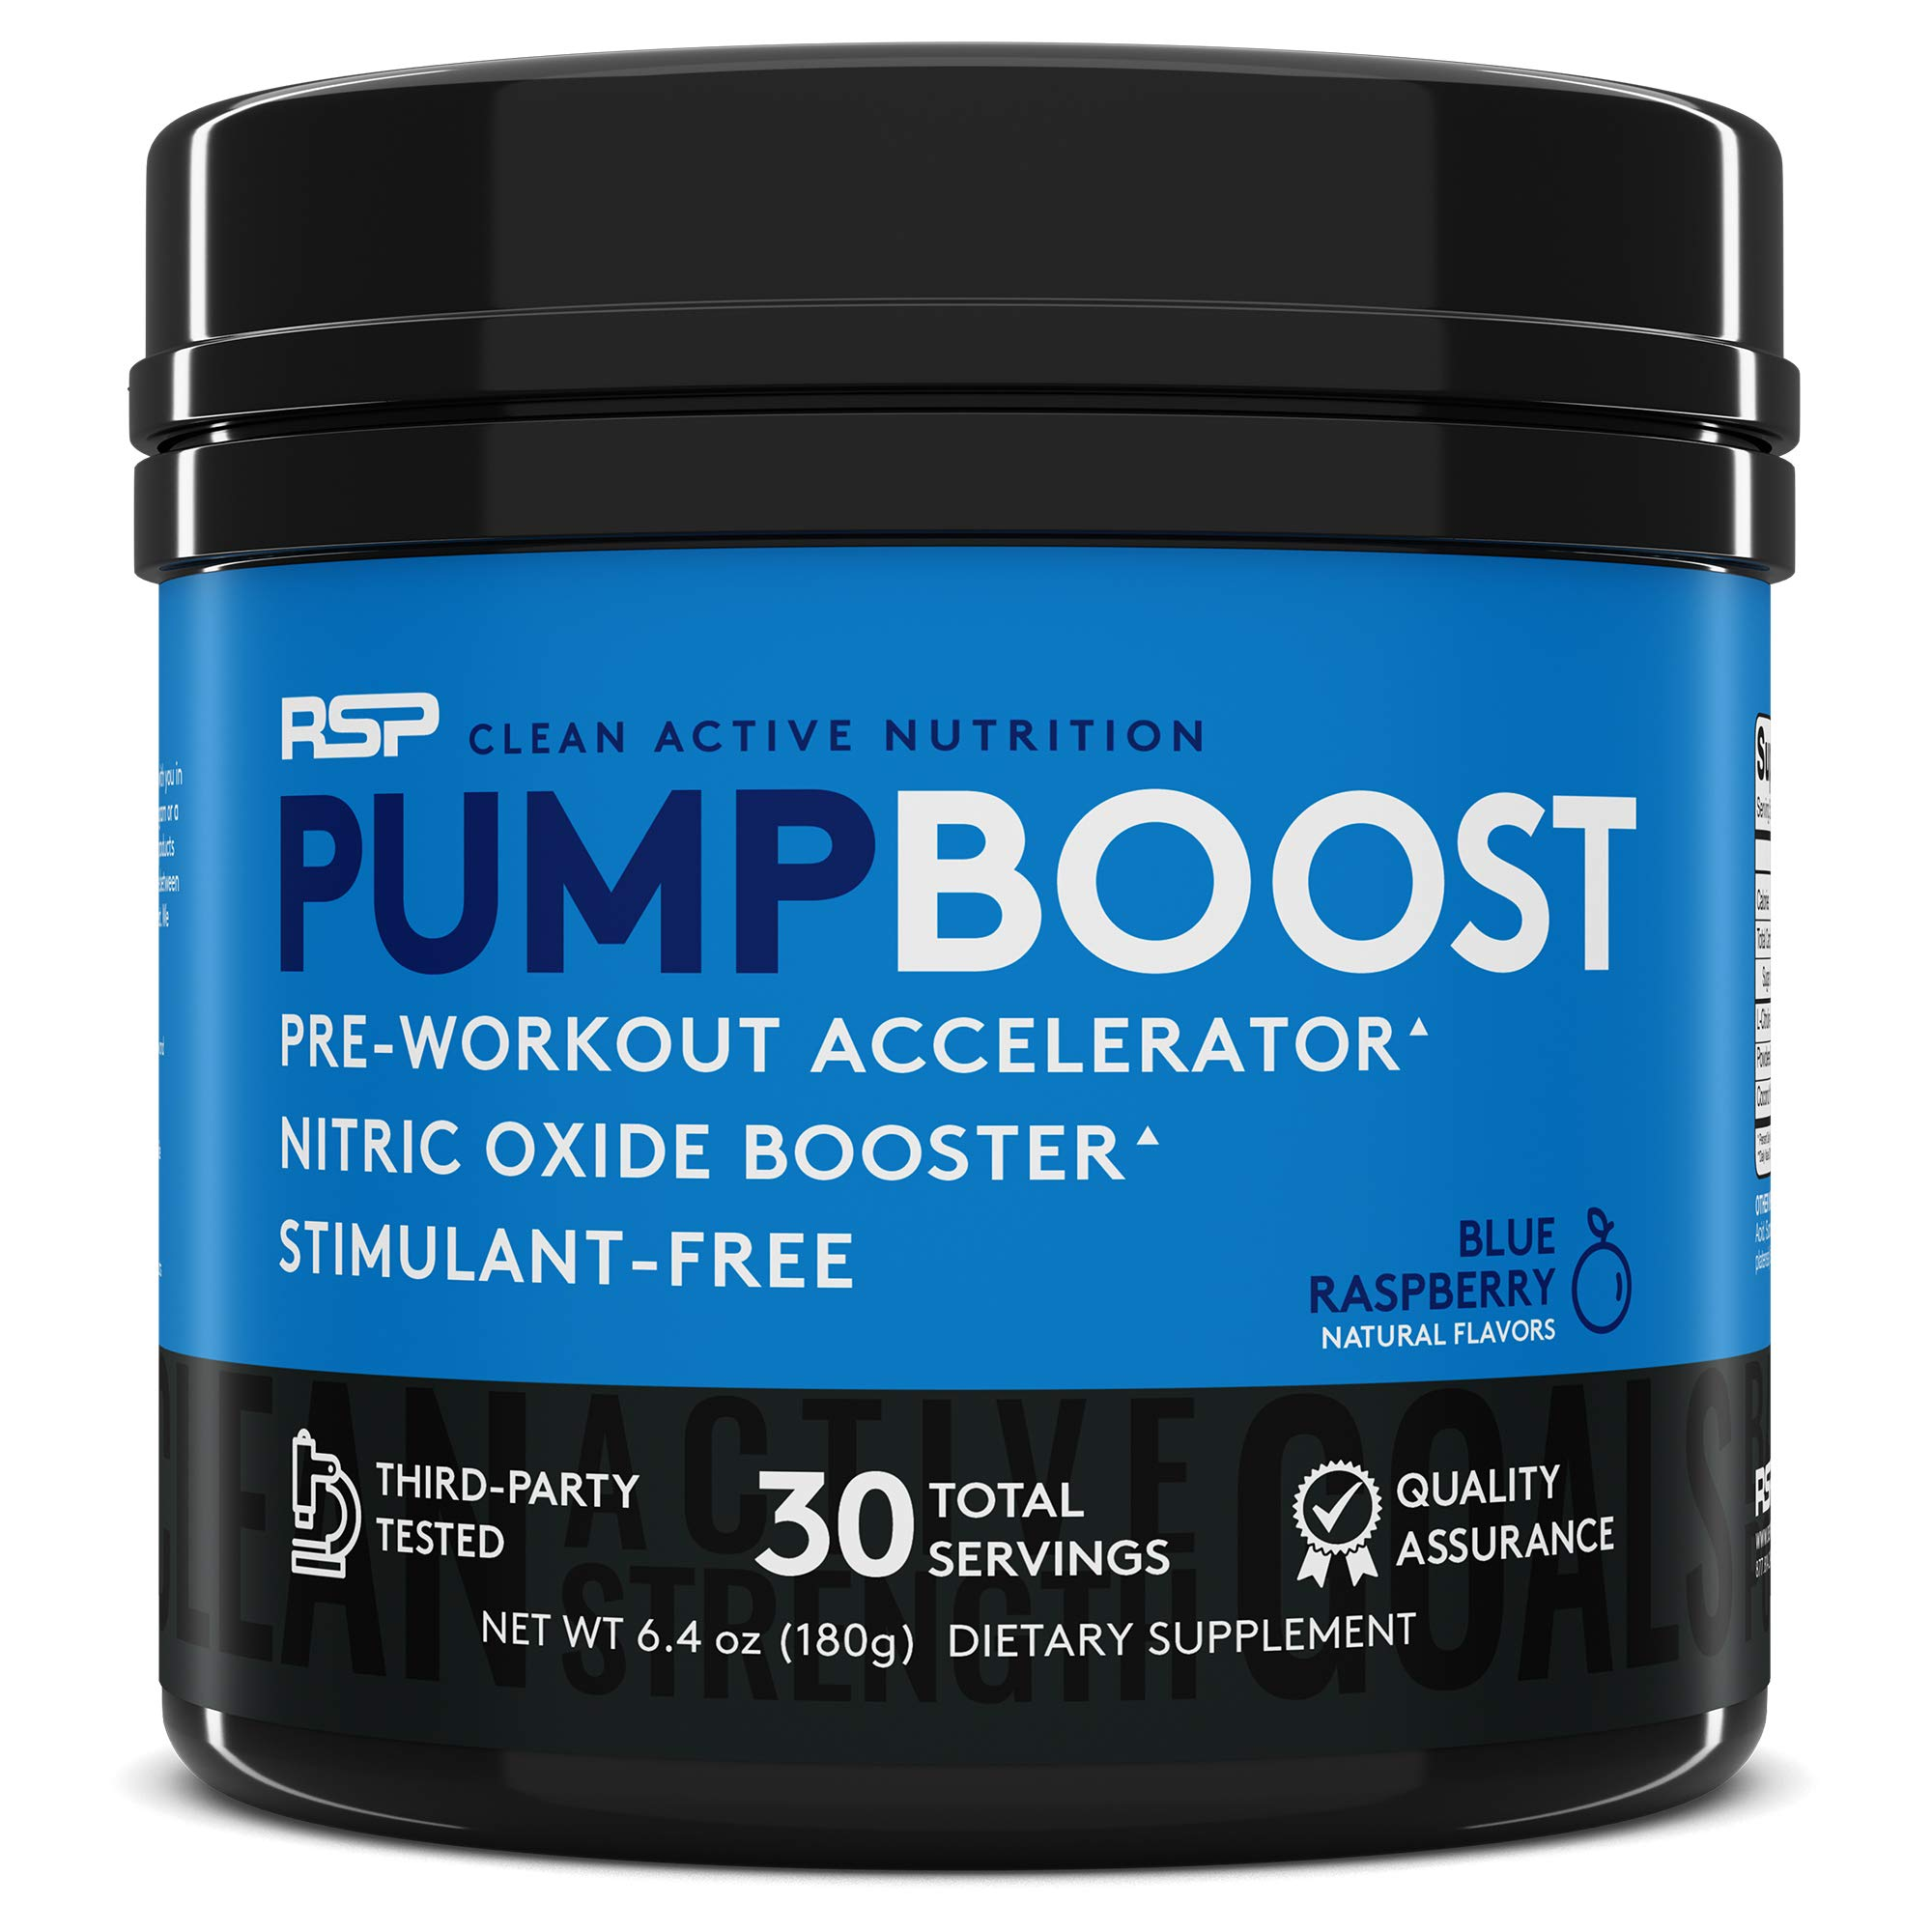 RSP Pump Boost - Stimulant Free Pre Workout & Nitric Oxide Booster, N.O. Boost for Enhanced Pumps, Energy Boost, and Improved Training Endurance, Blue Rasp (Packaging May Vary) by RSP Nutrition